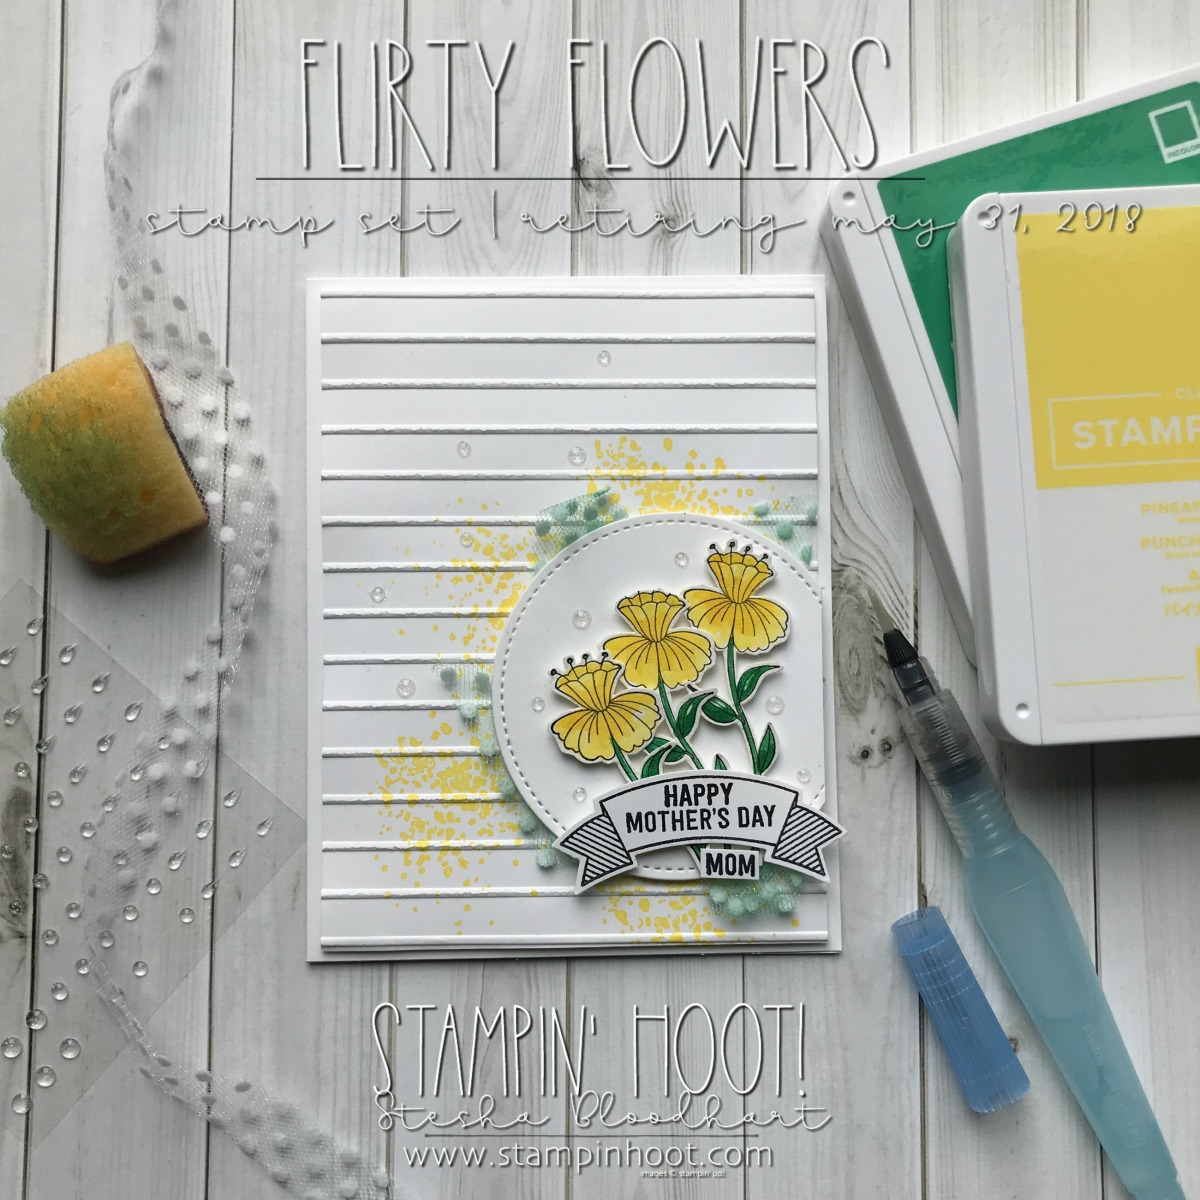 Flirty Flowers, Artisan Textures, & Thoughtful Banners Stamp Sets from Stampin' Up! Mother's Day Card by Stesha Bloodhart, Stampin' Hoot! #steshabloodhart #stampinhoot